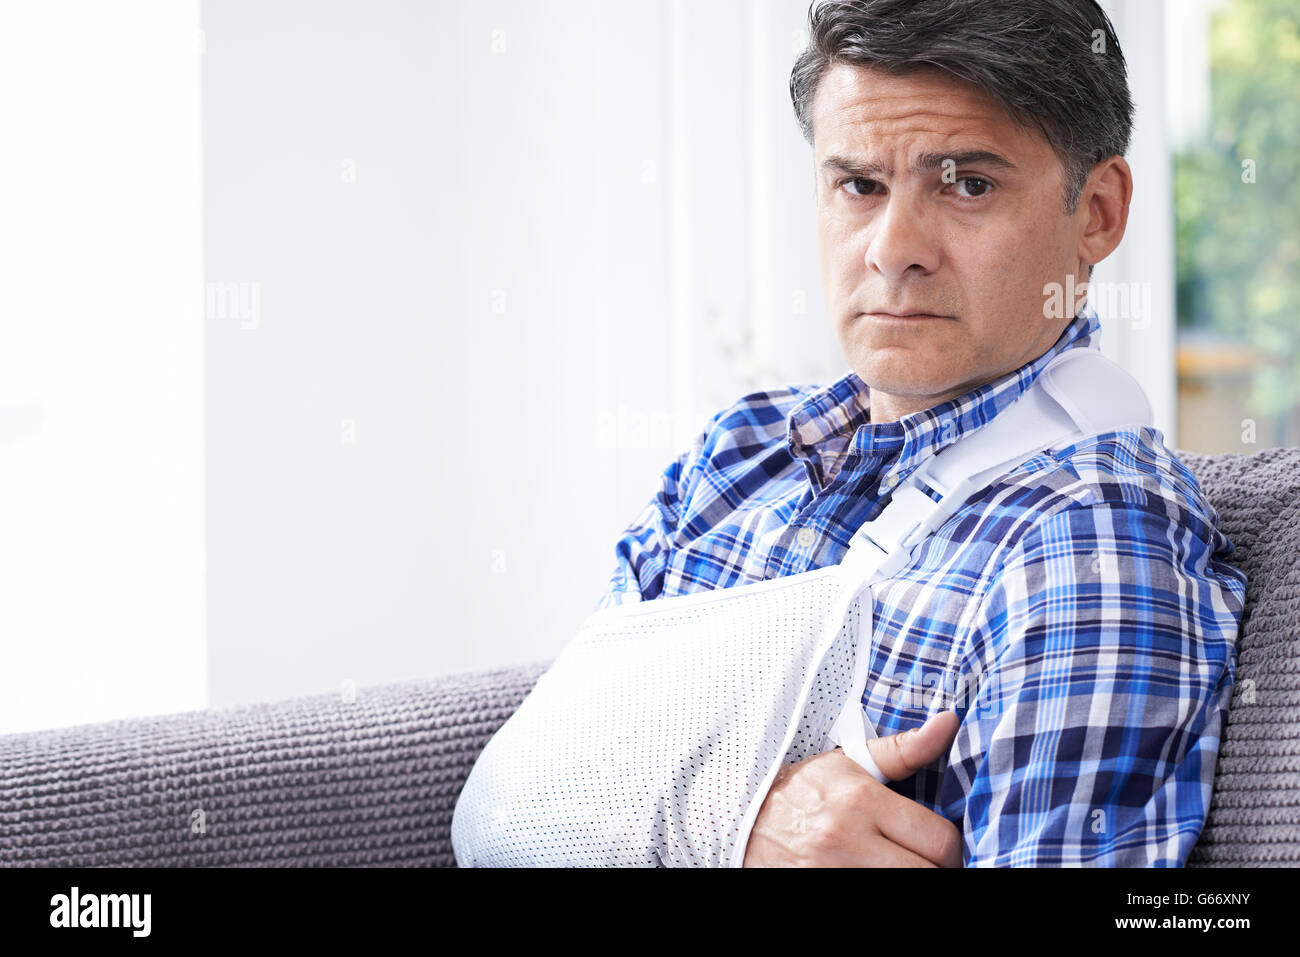 Portrait Of Mature Man With Arm In Sling At Home - Stock Image